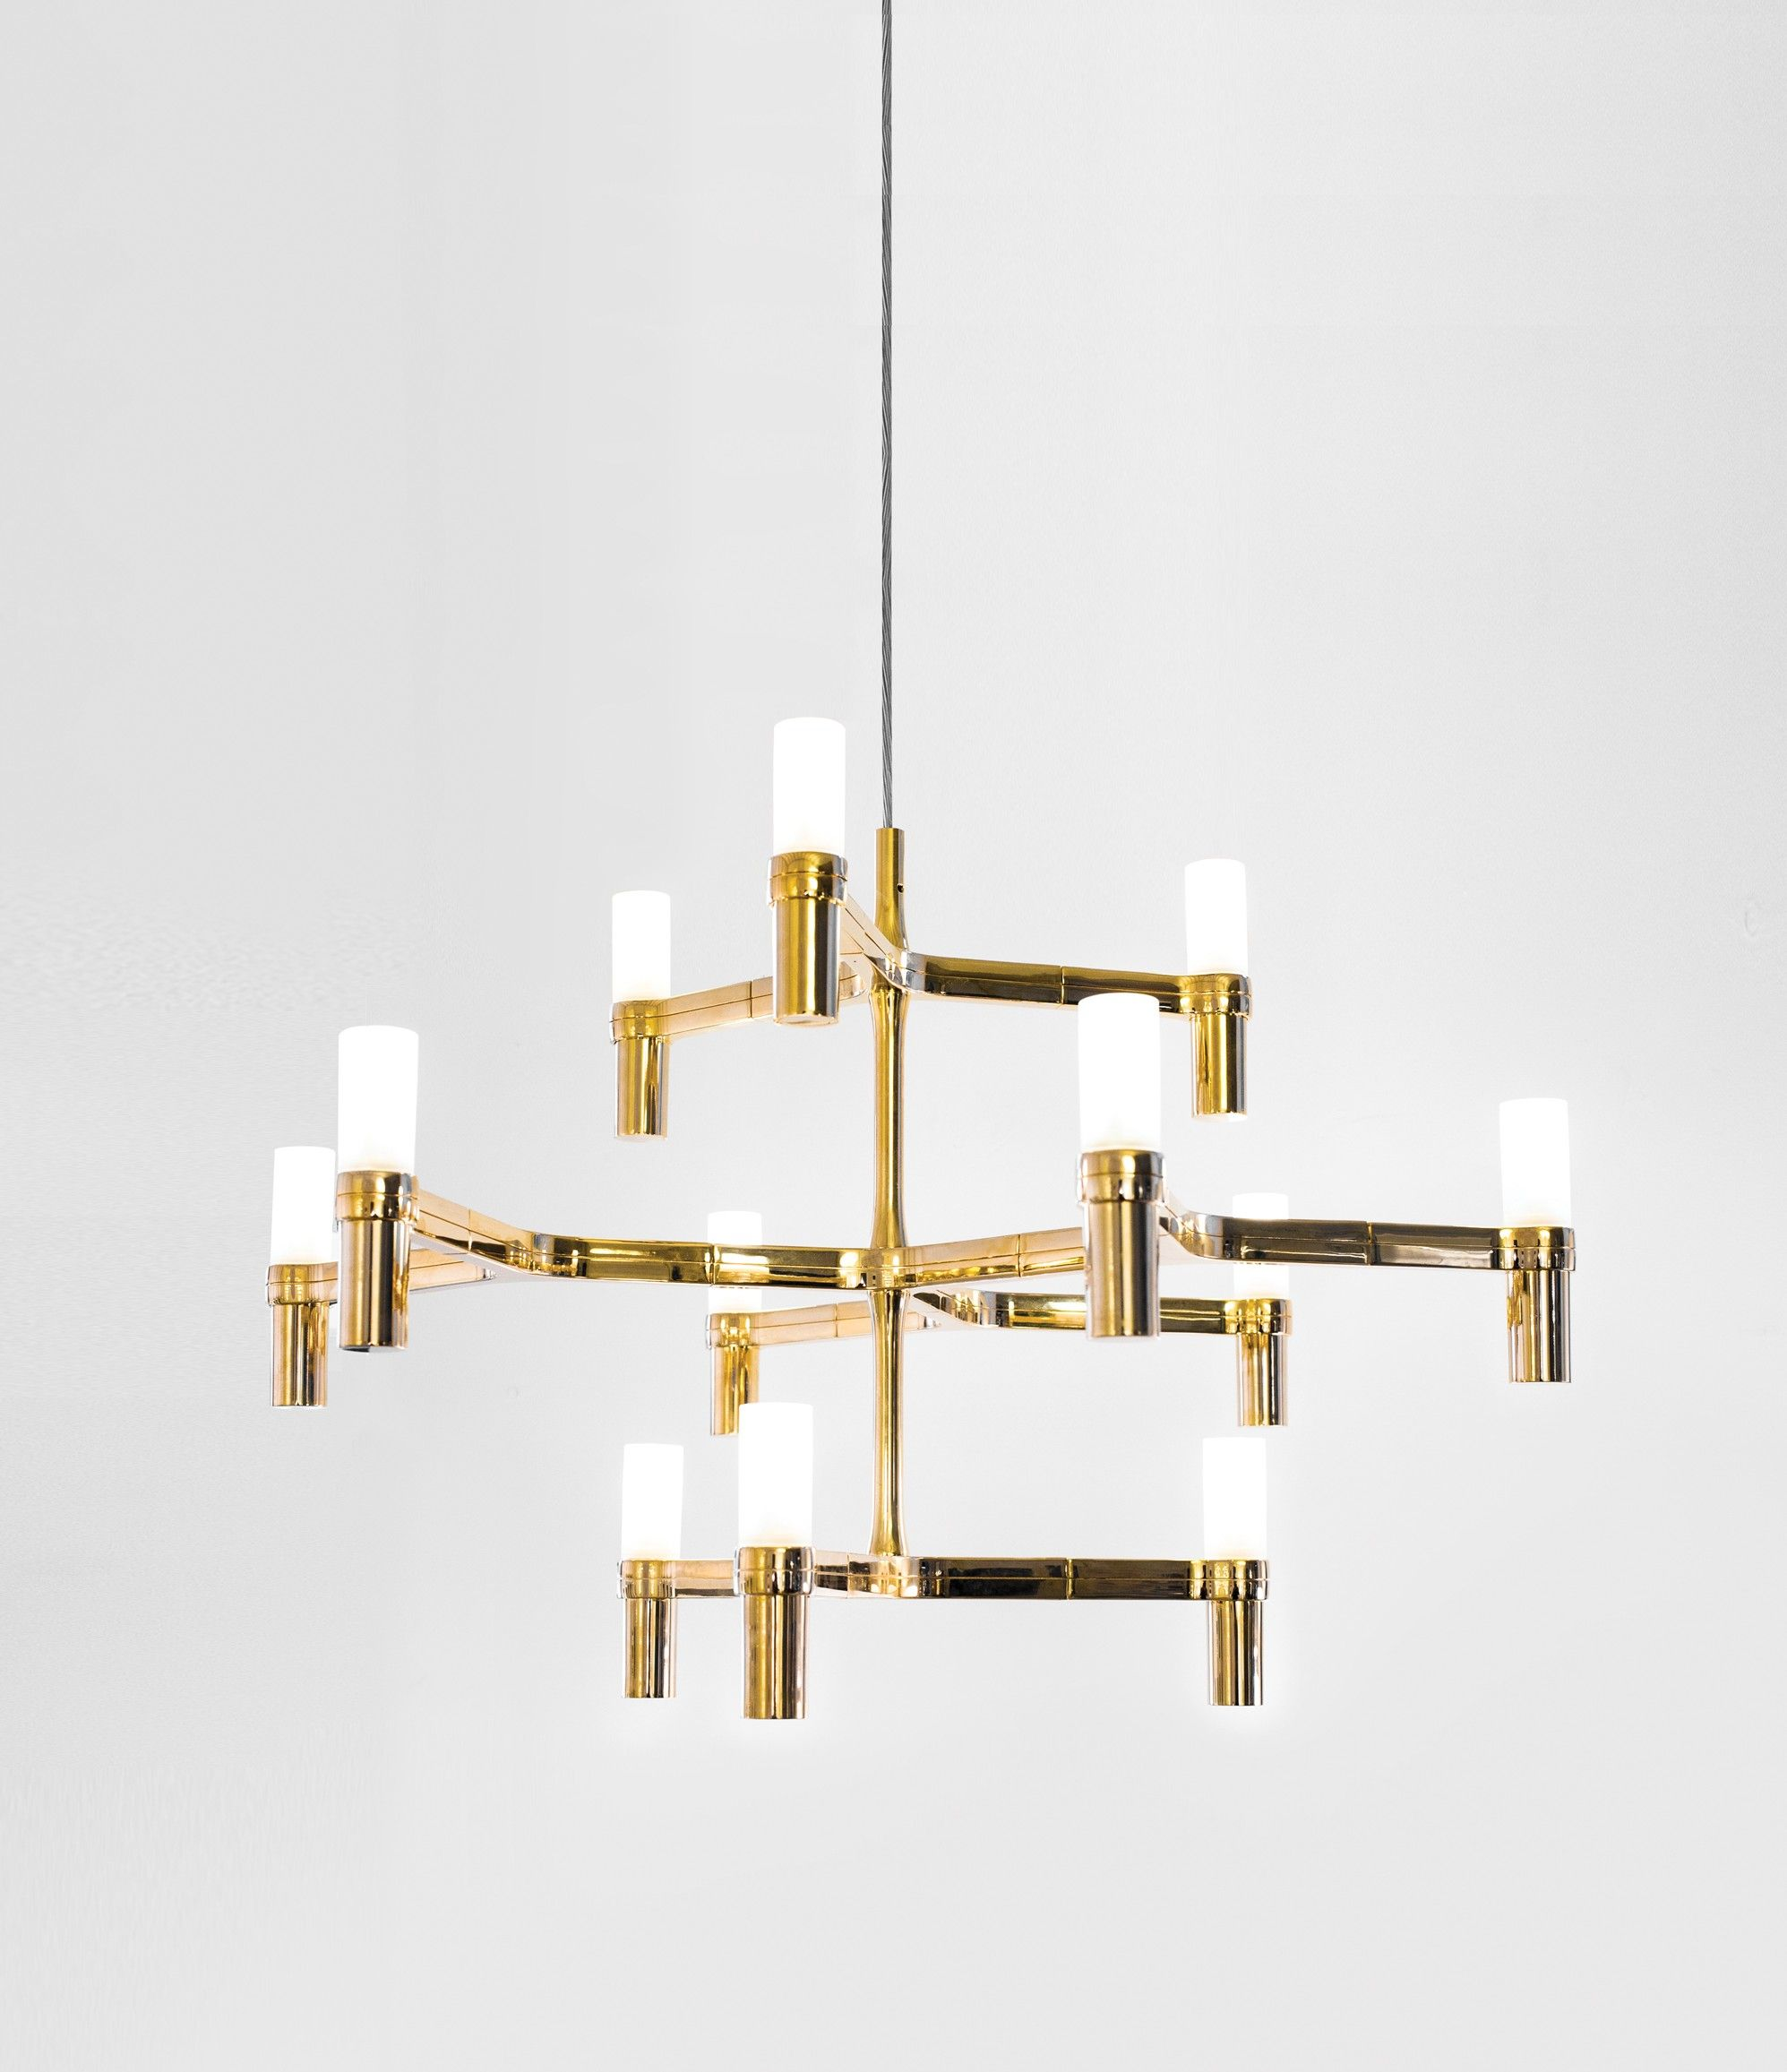 CROWN MINOR Pendant chandeliers, with modular structure in die-casted aluminium and sandblasted glass diffusers. Structure glossy polished, painted in white, matt black or gold. Available a NEMO LED G9 kit for a warm tone. Widespread light. Double switch for versions with more than a level. Transparent cable on all the versions.